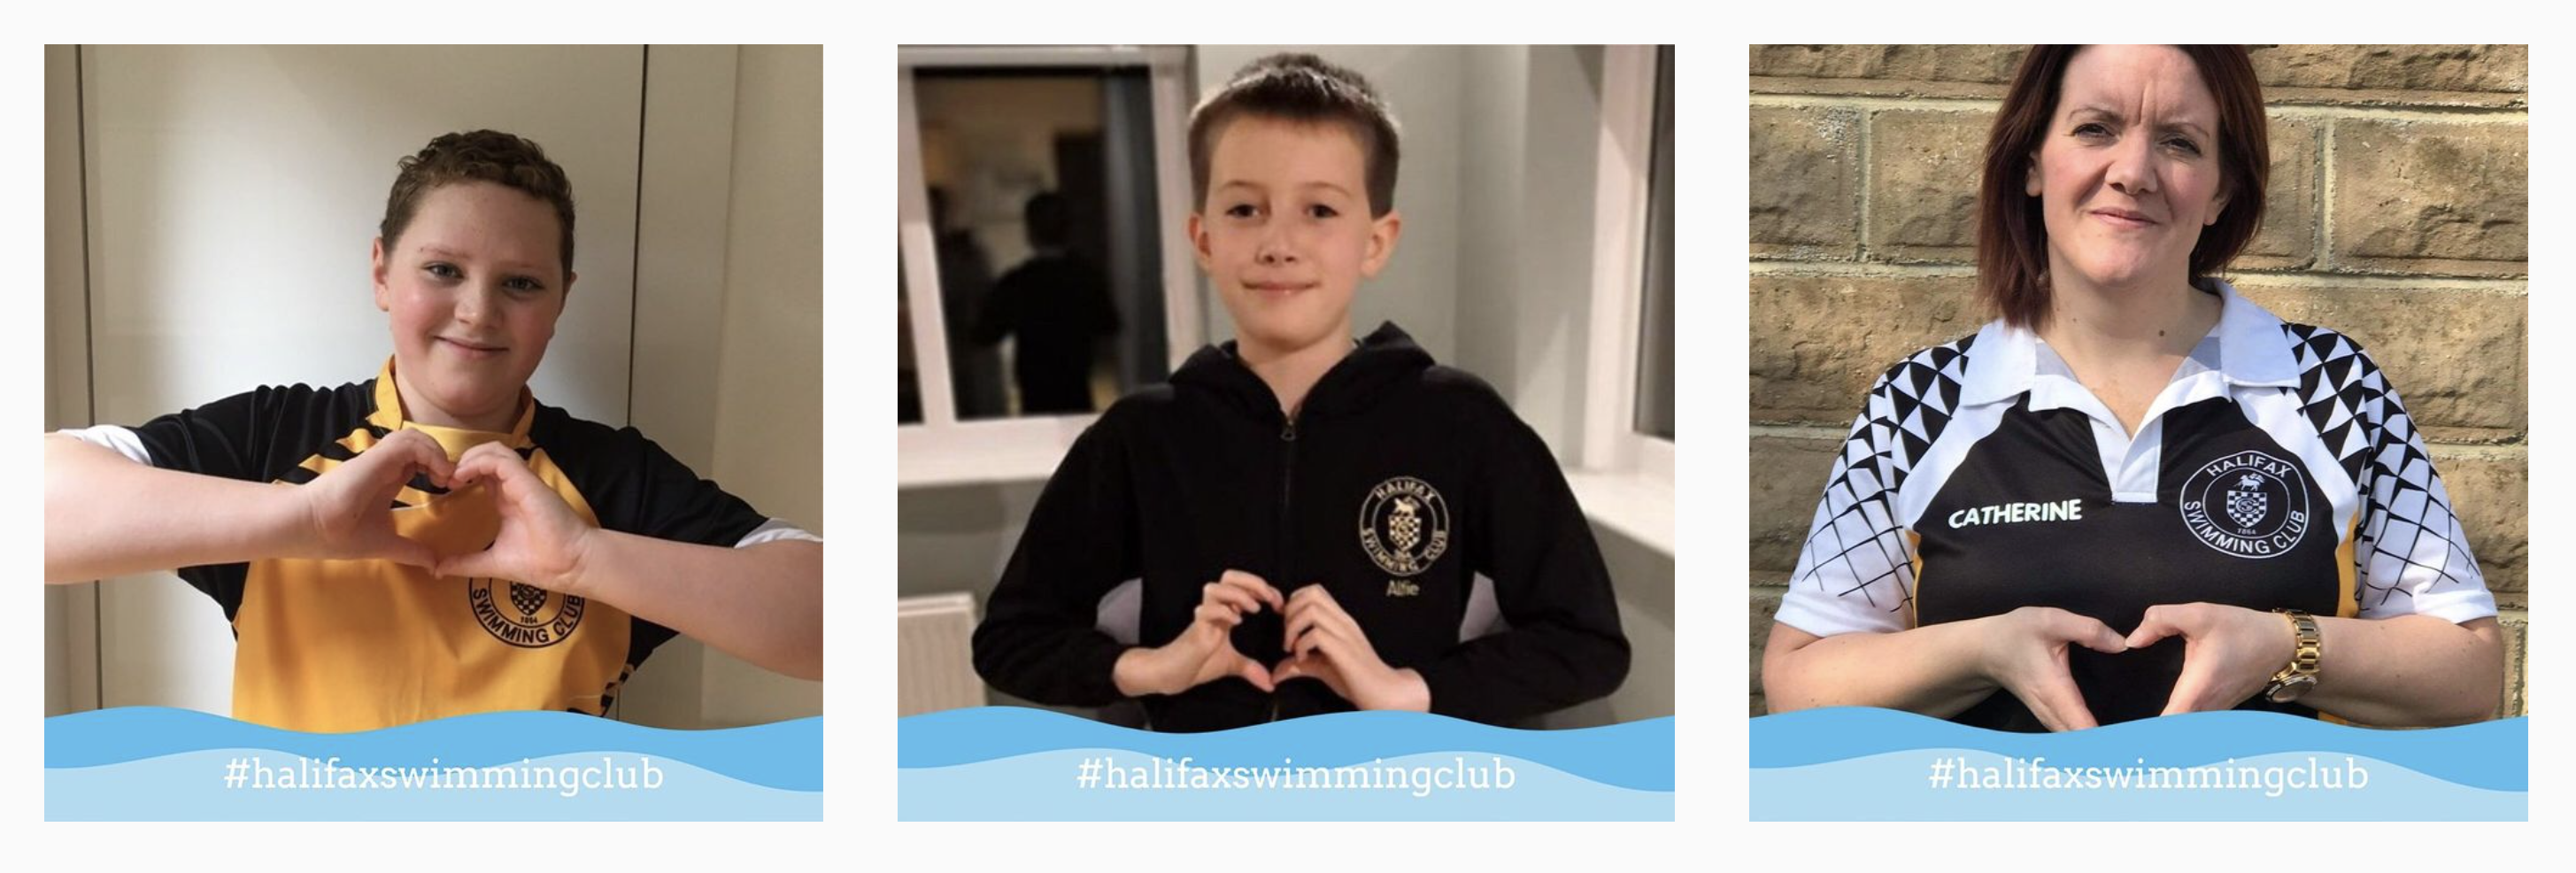 Halifax Swimming Club showing the love